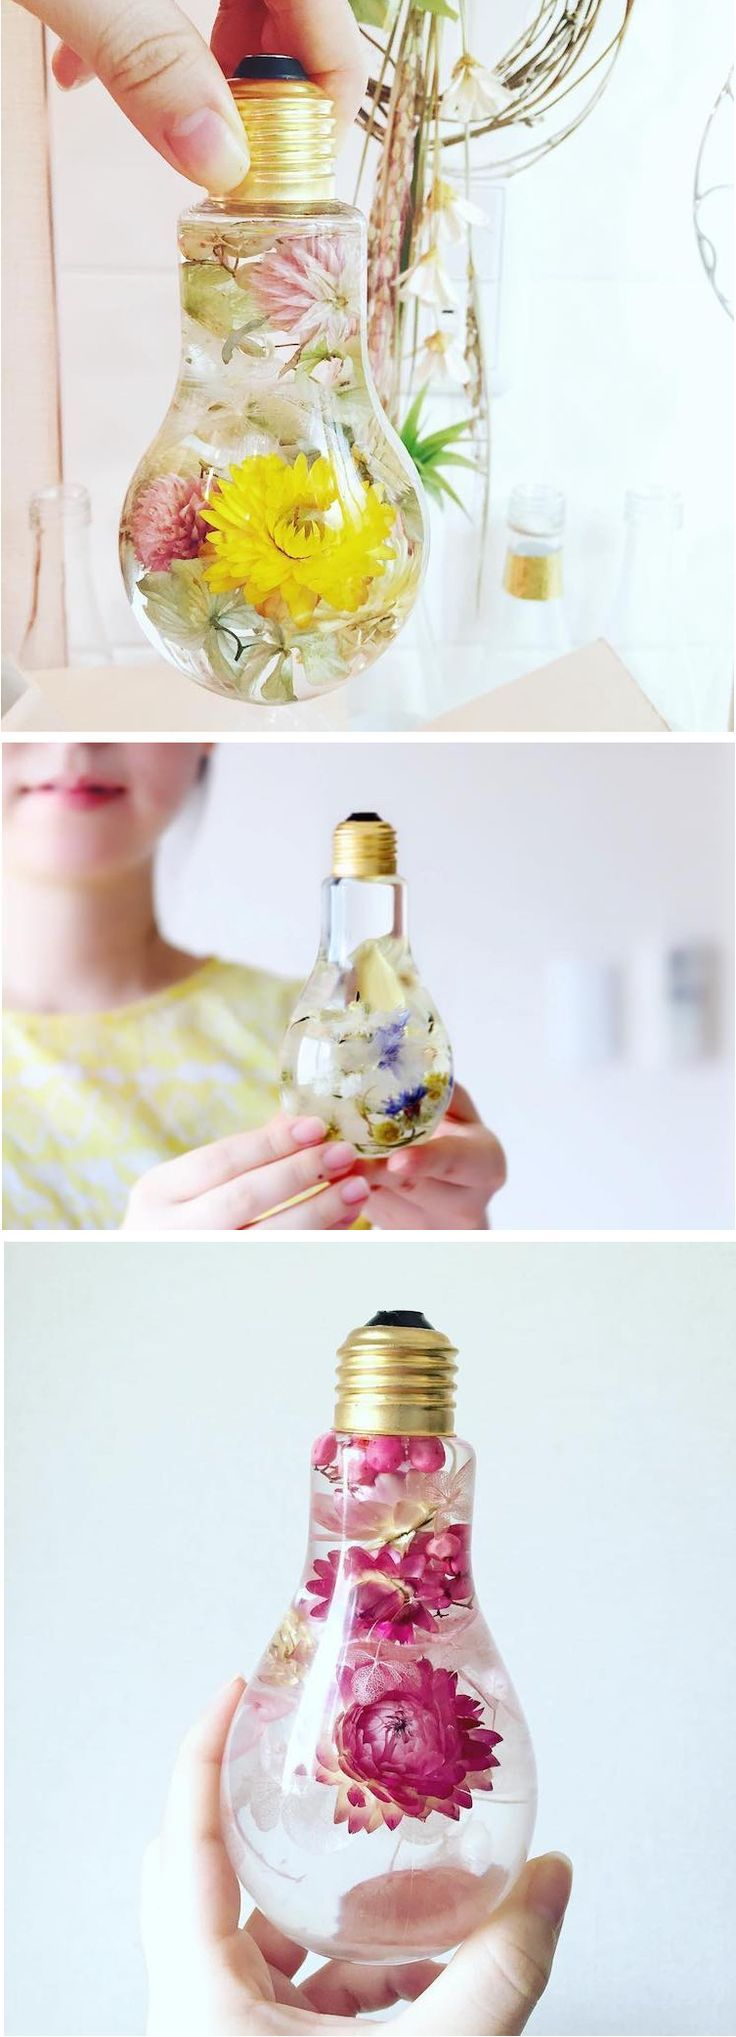 Enchanting Flowers Suspended in Light Bulbs Glisten Like Precious Jewels -   25 unique diy art